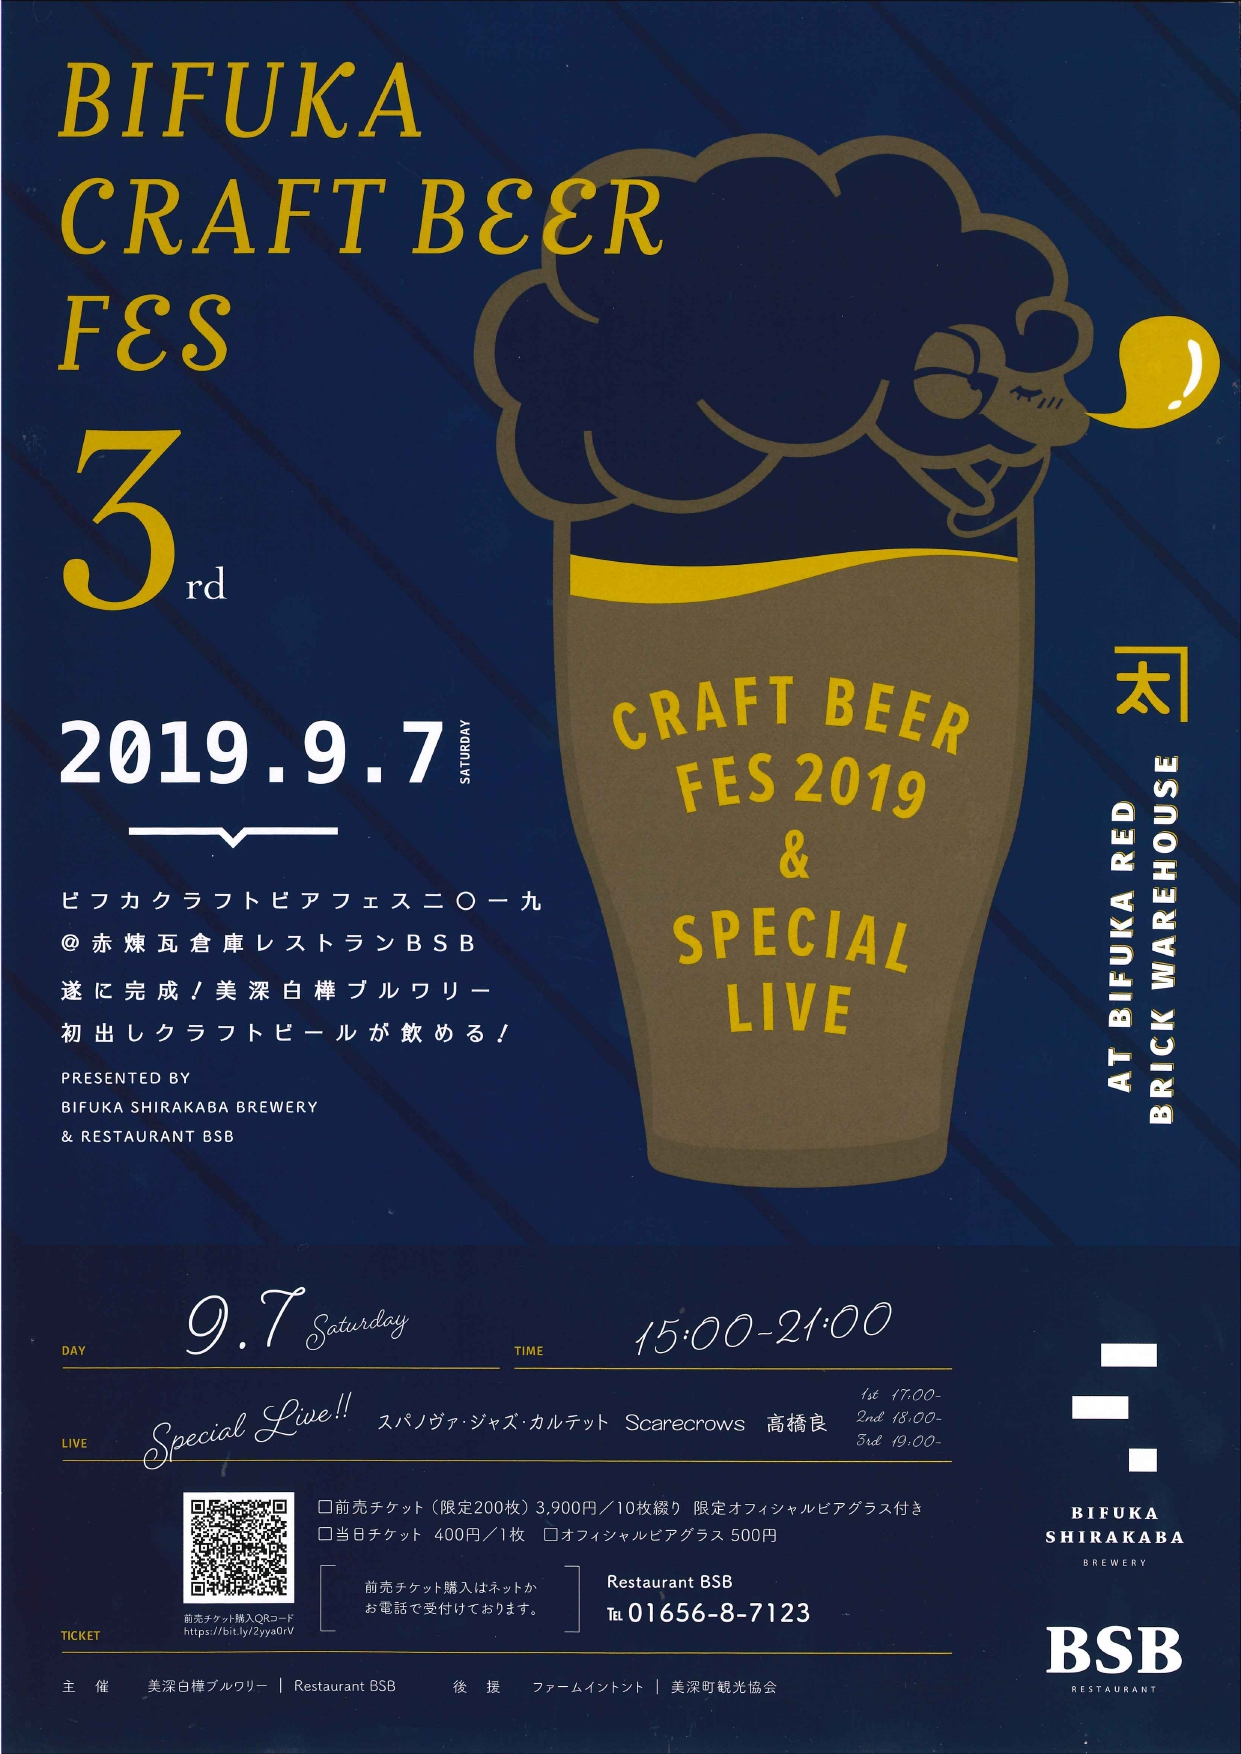 BIFUKA CRAFT BEER FES 3rd